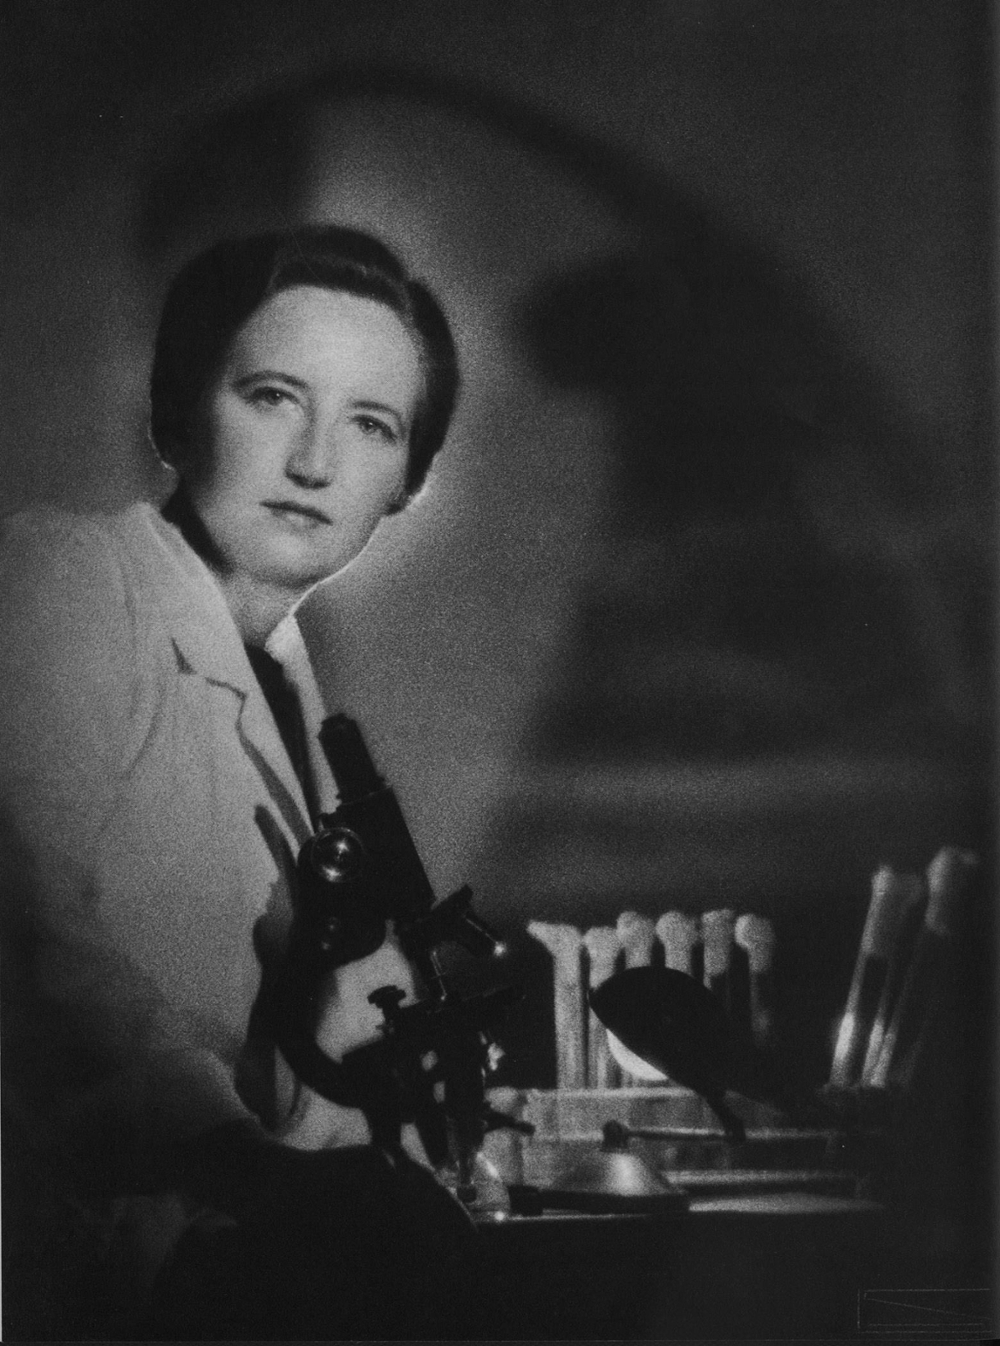 Elizabeth Gambrell with microscope